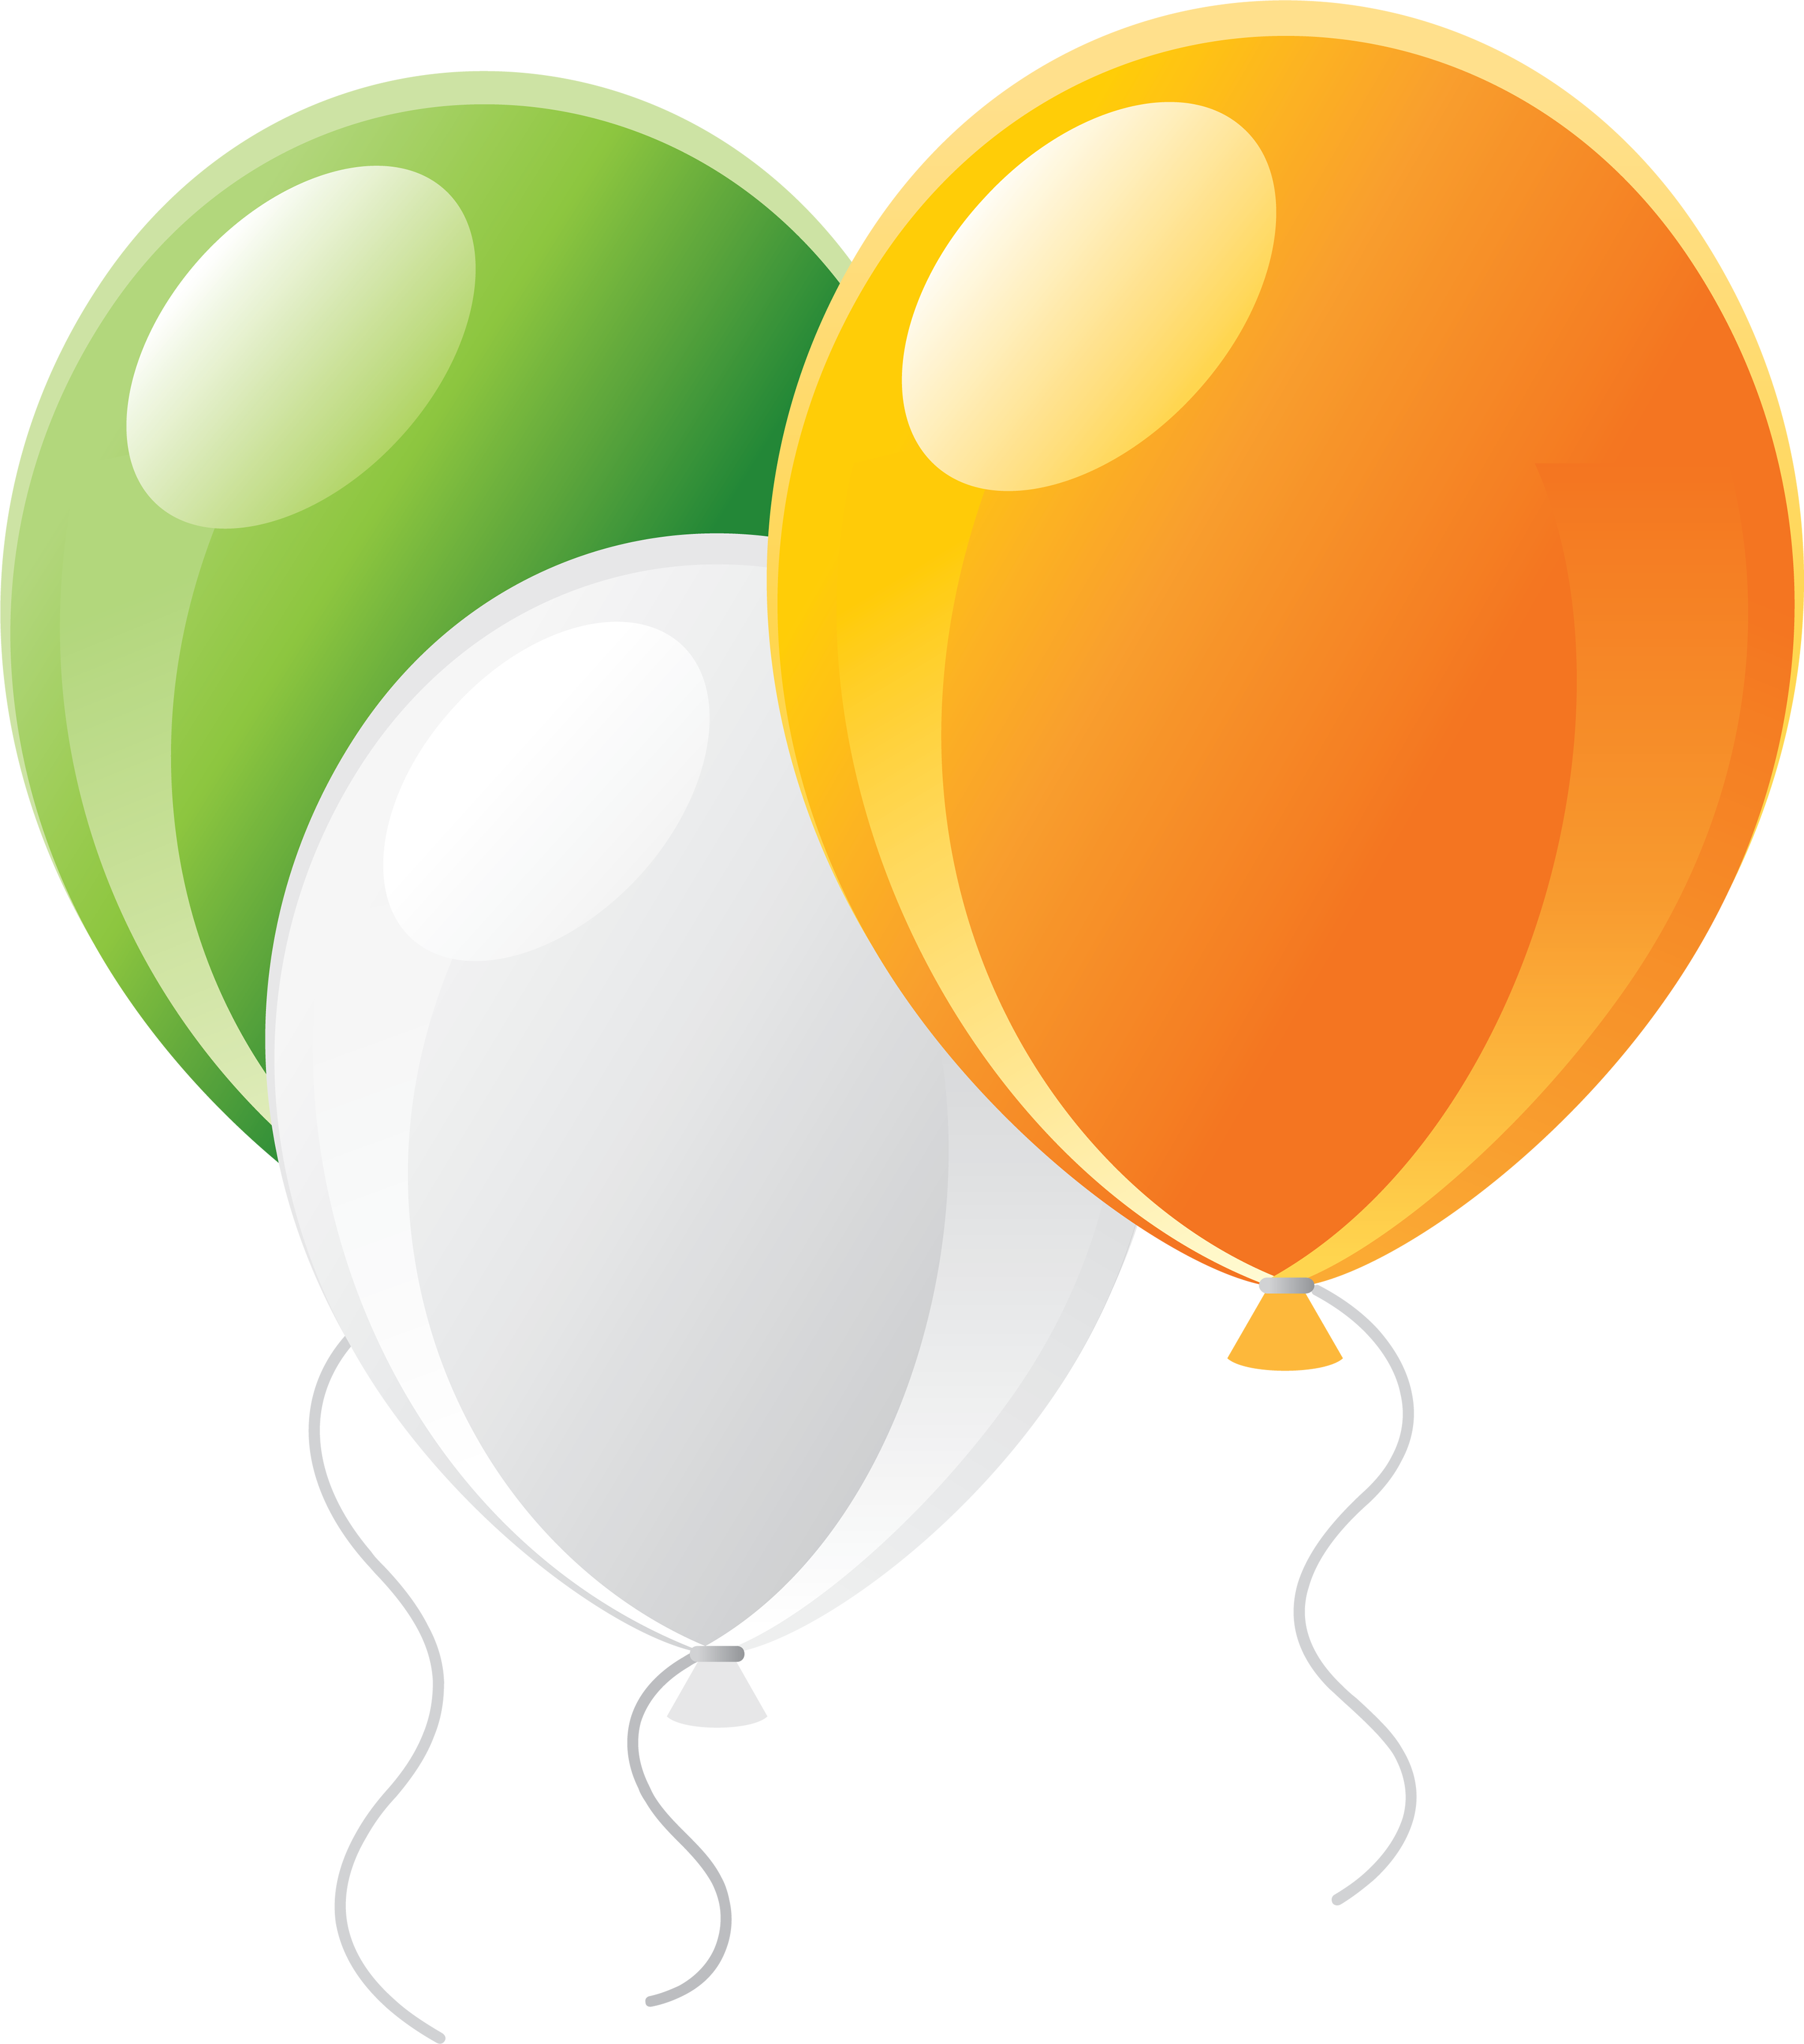 Surprise clipart balloon. Png images free picture